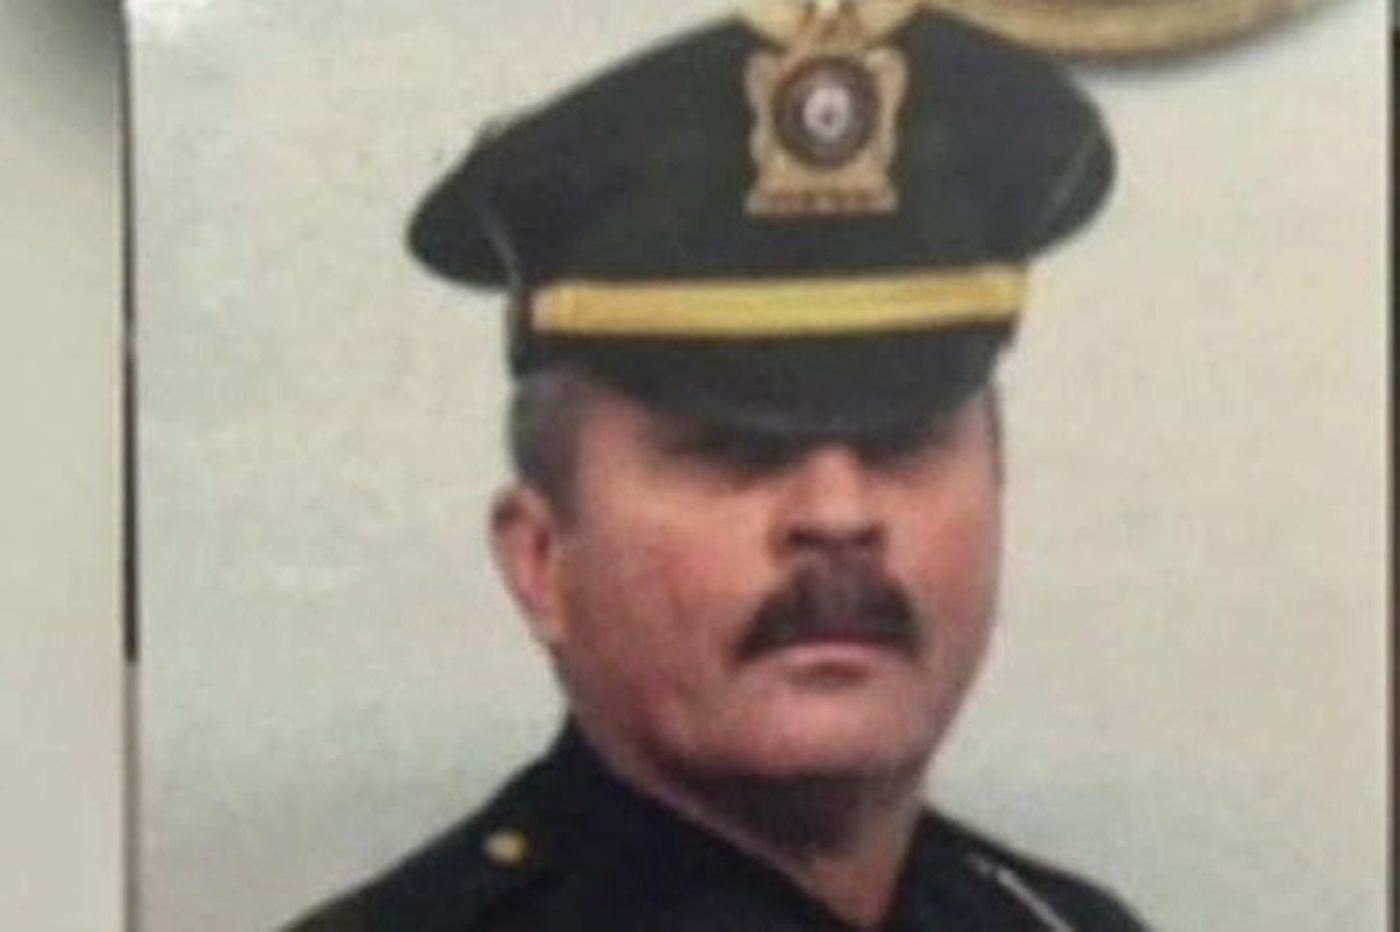 Lawyer for ex-NJ police chief charged with hate crimes says his client was framed